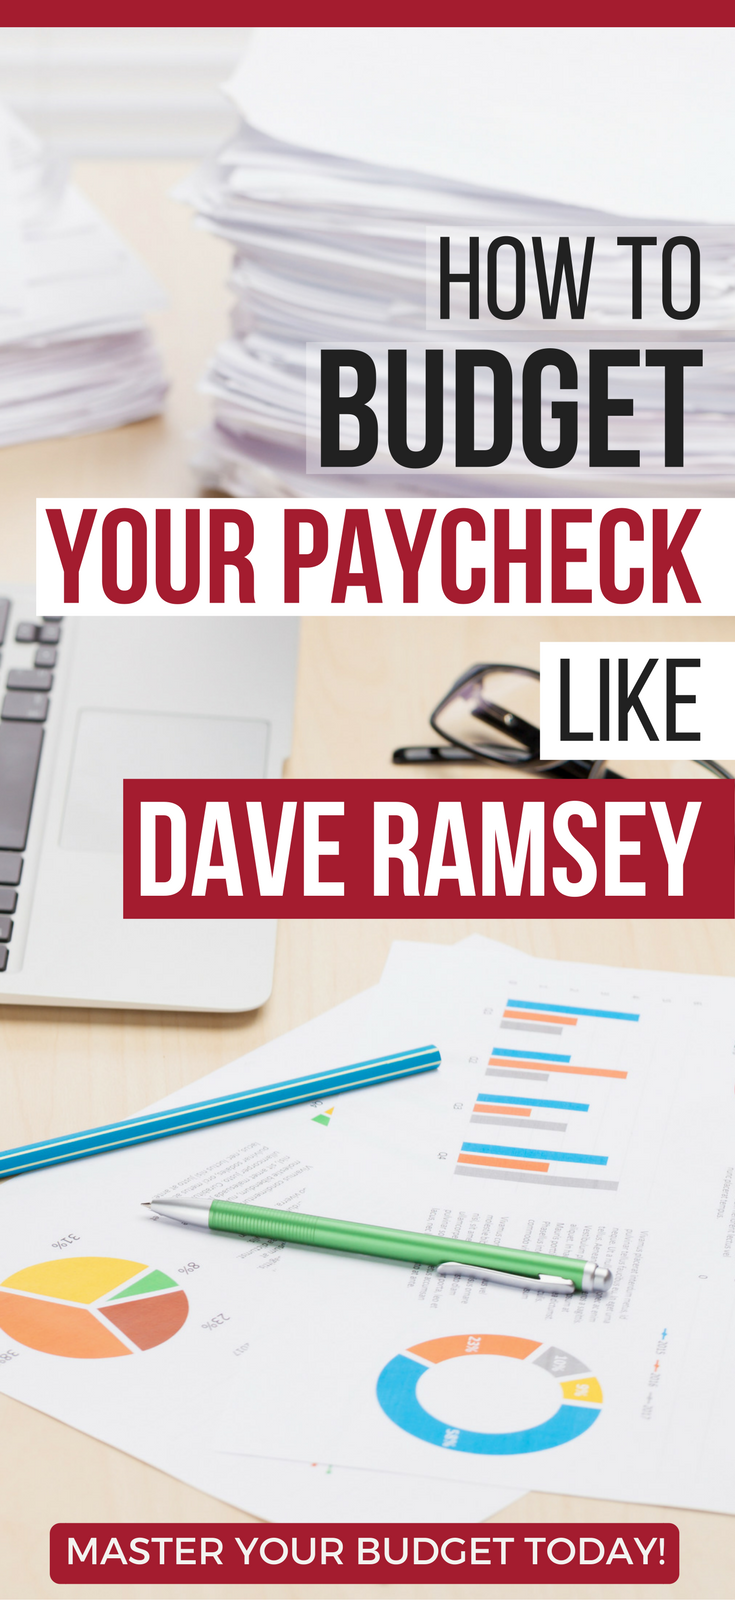 Dave Ramsey Recommended Household Budget Percentages | Monthly ...